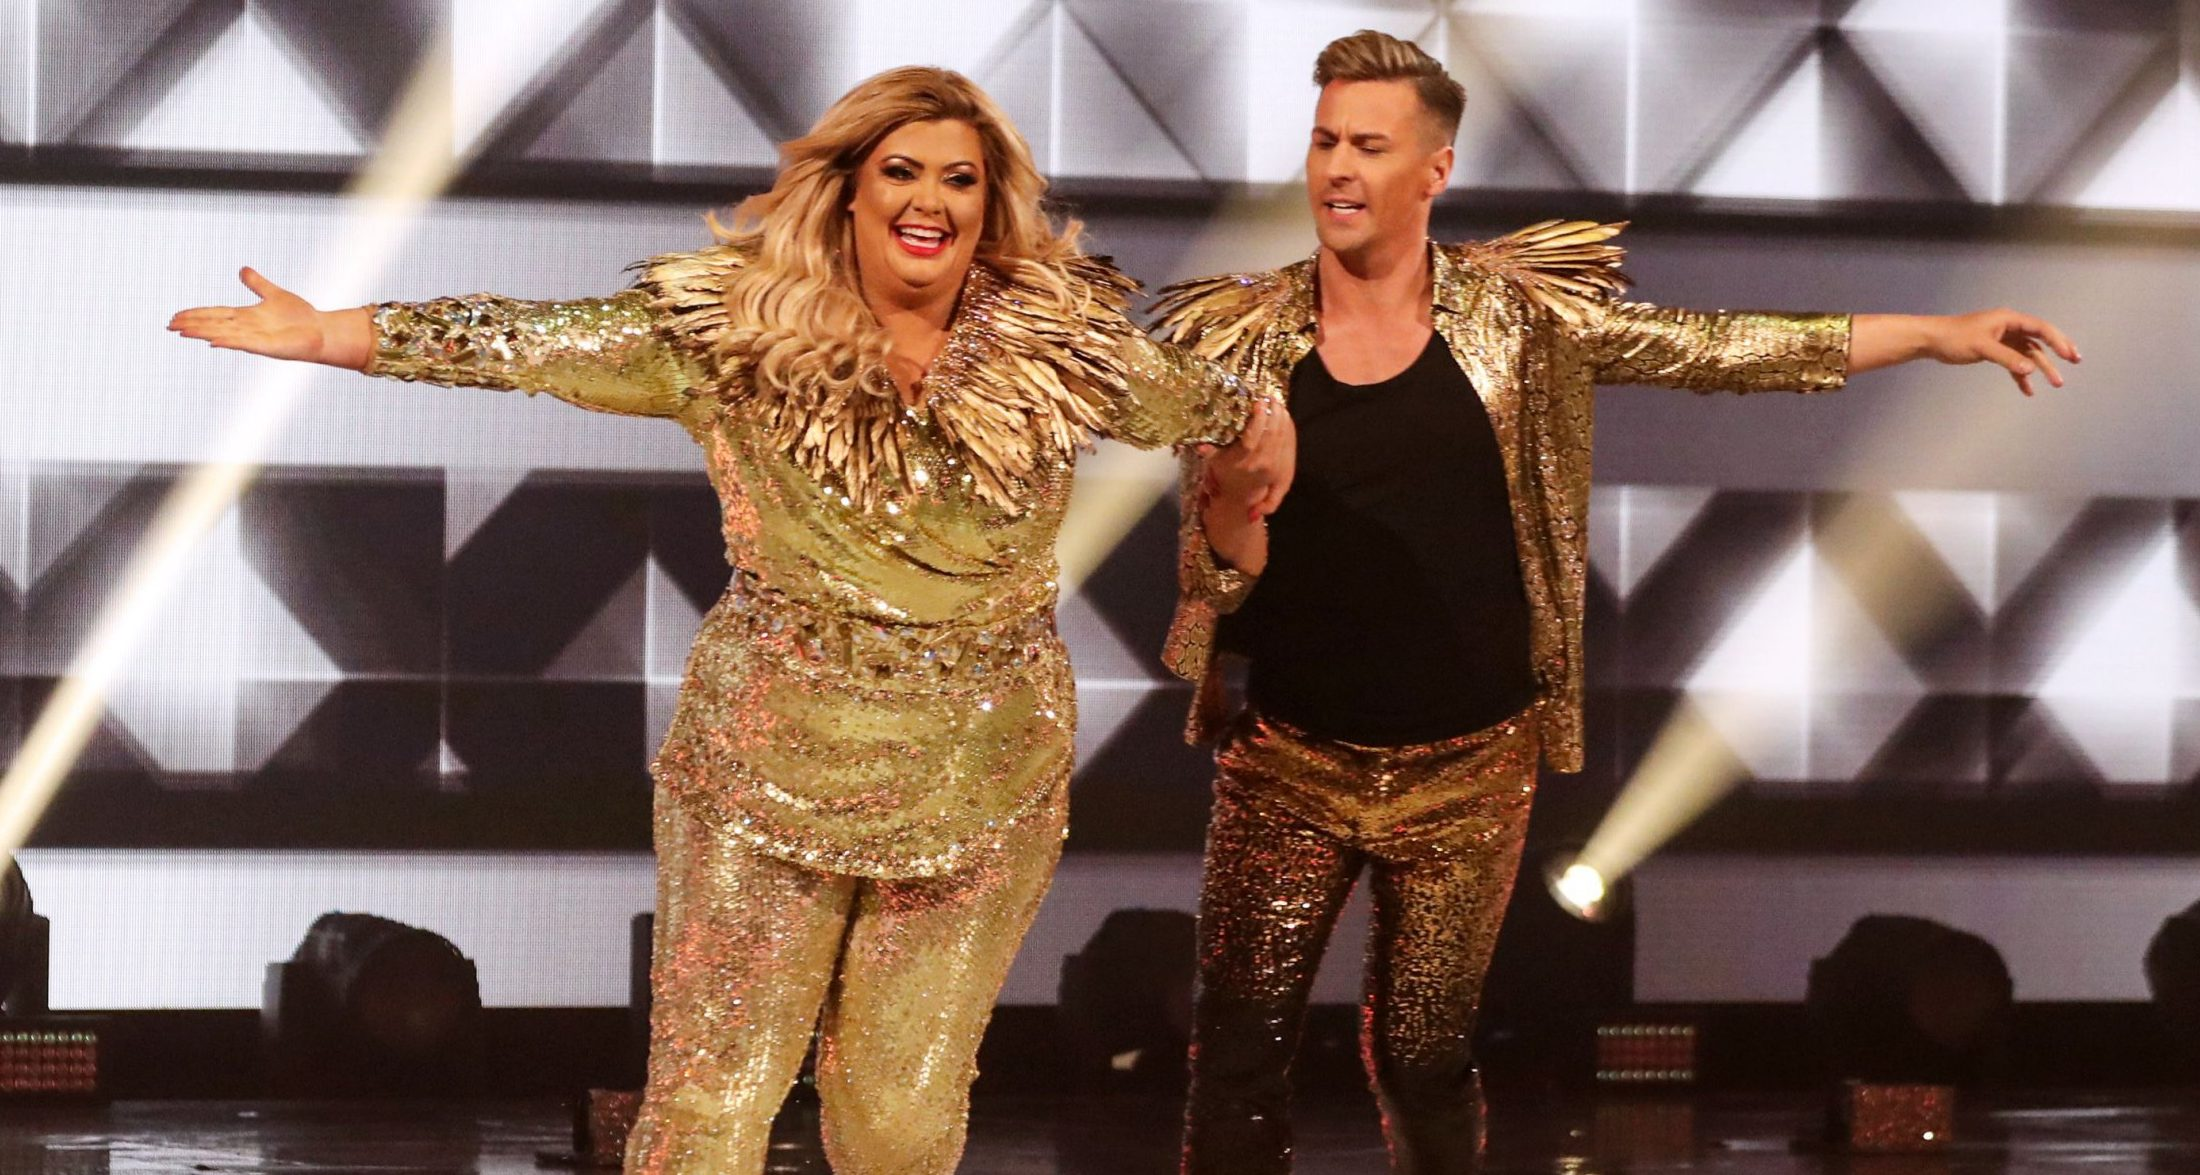 Dancing On Ice star Brian McFadden says Gemma Collins is 'brilliant' but The GC is 'a pain'